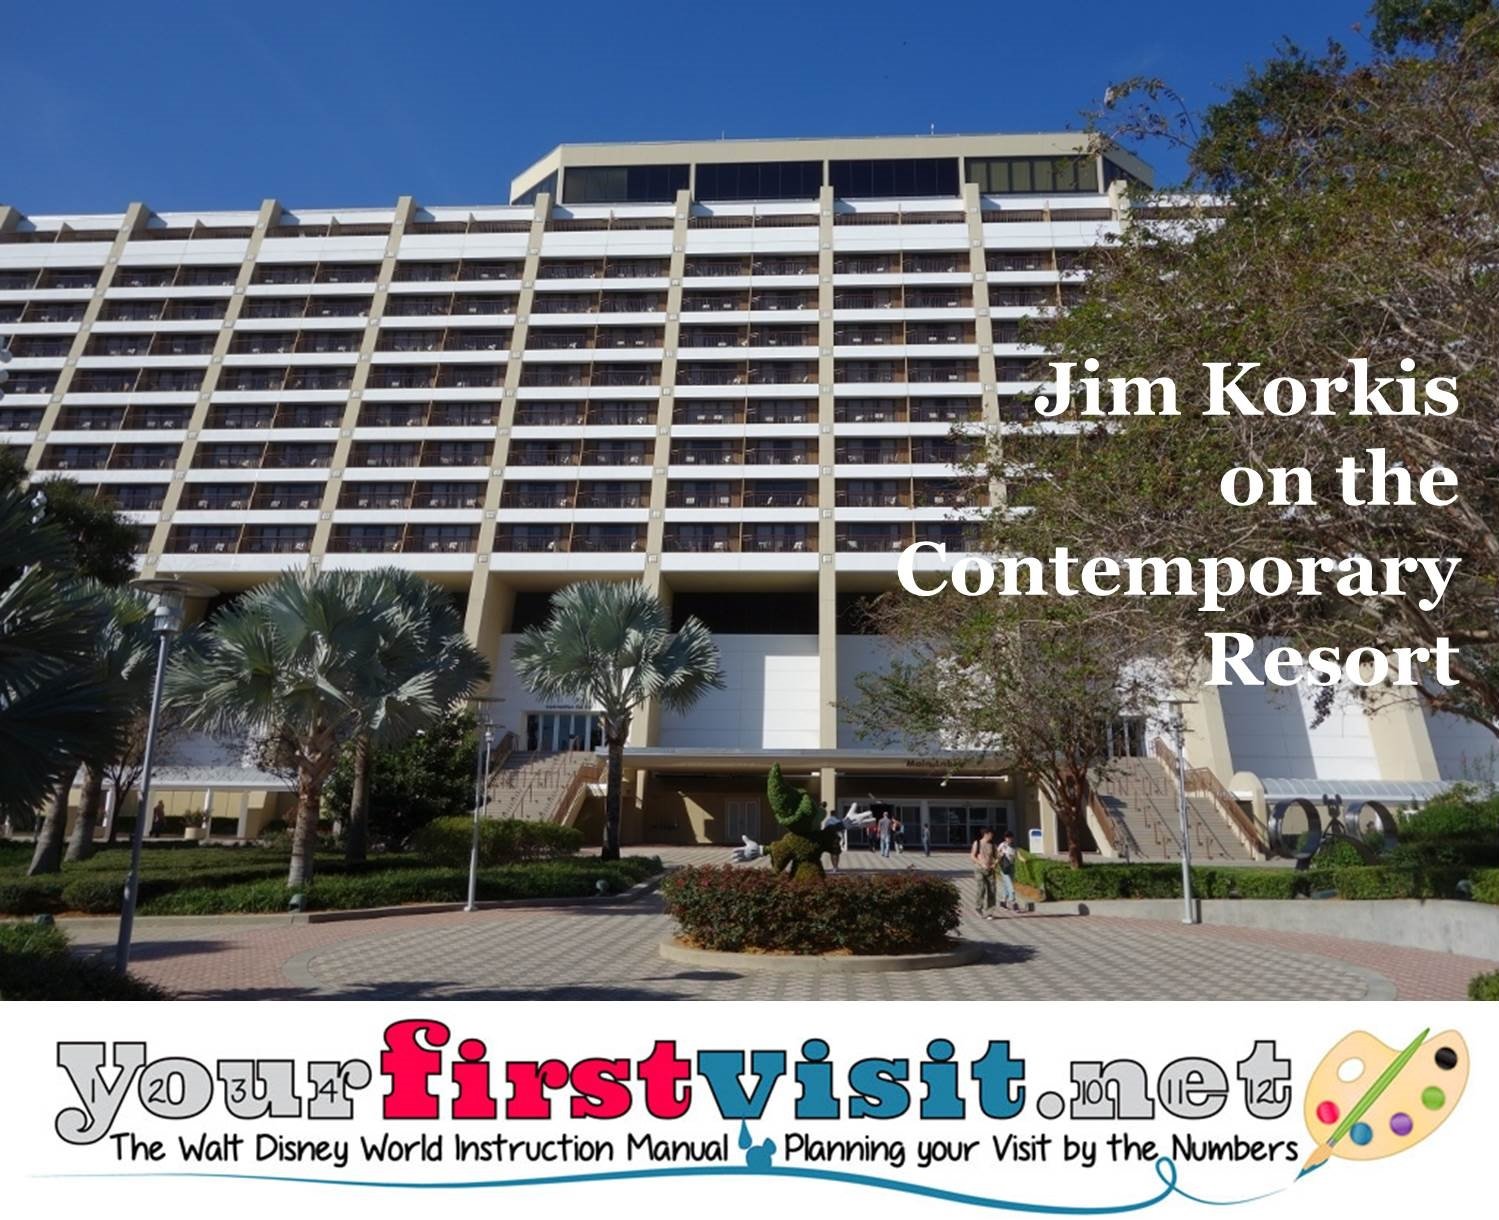 Jim Korkis on the Contemporary Resort from yourfirstvisit.net